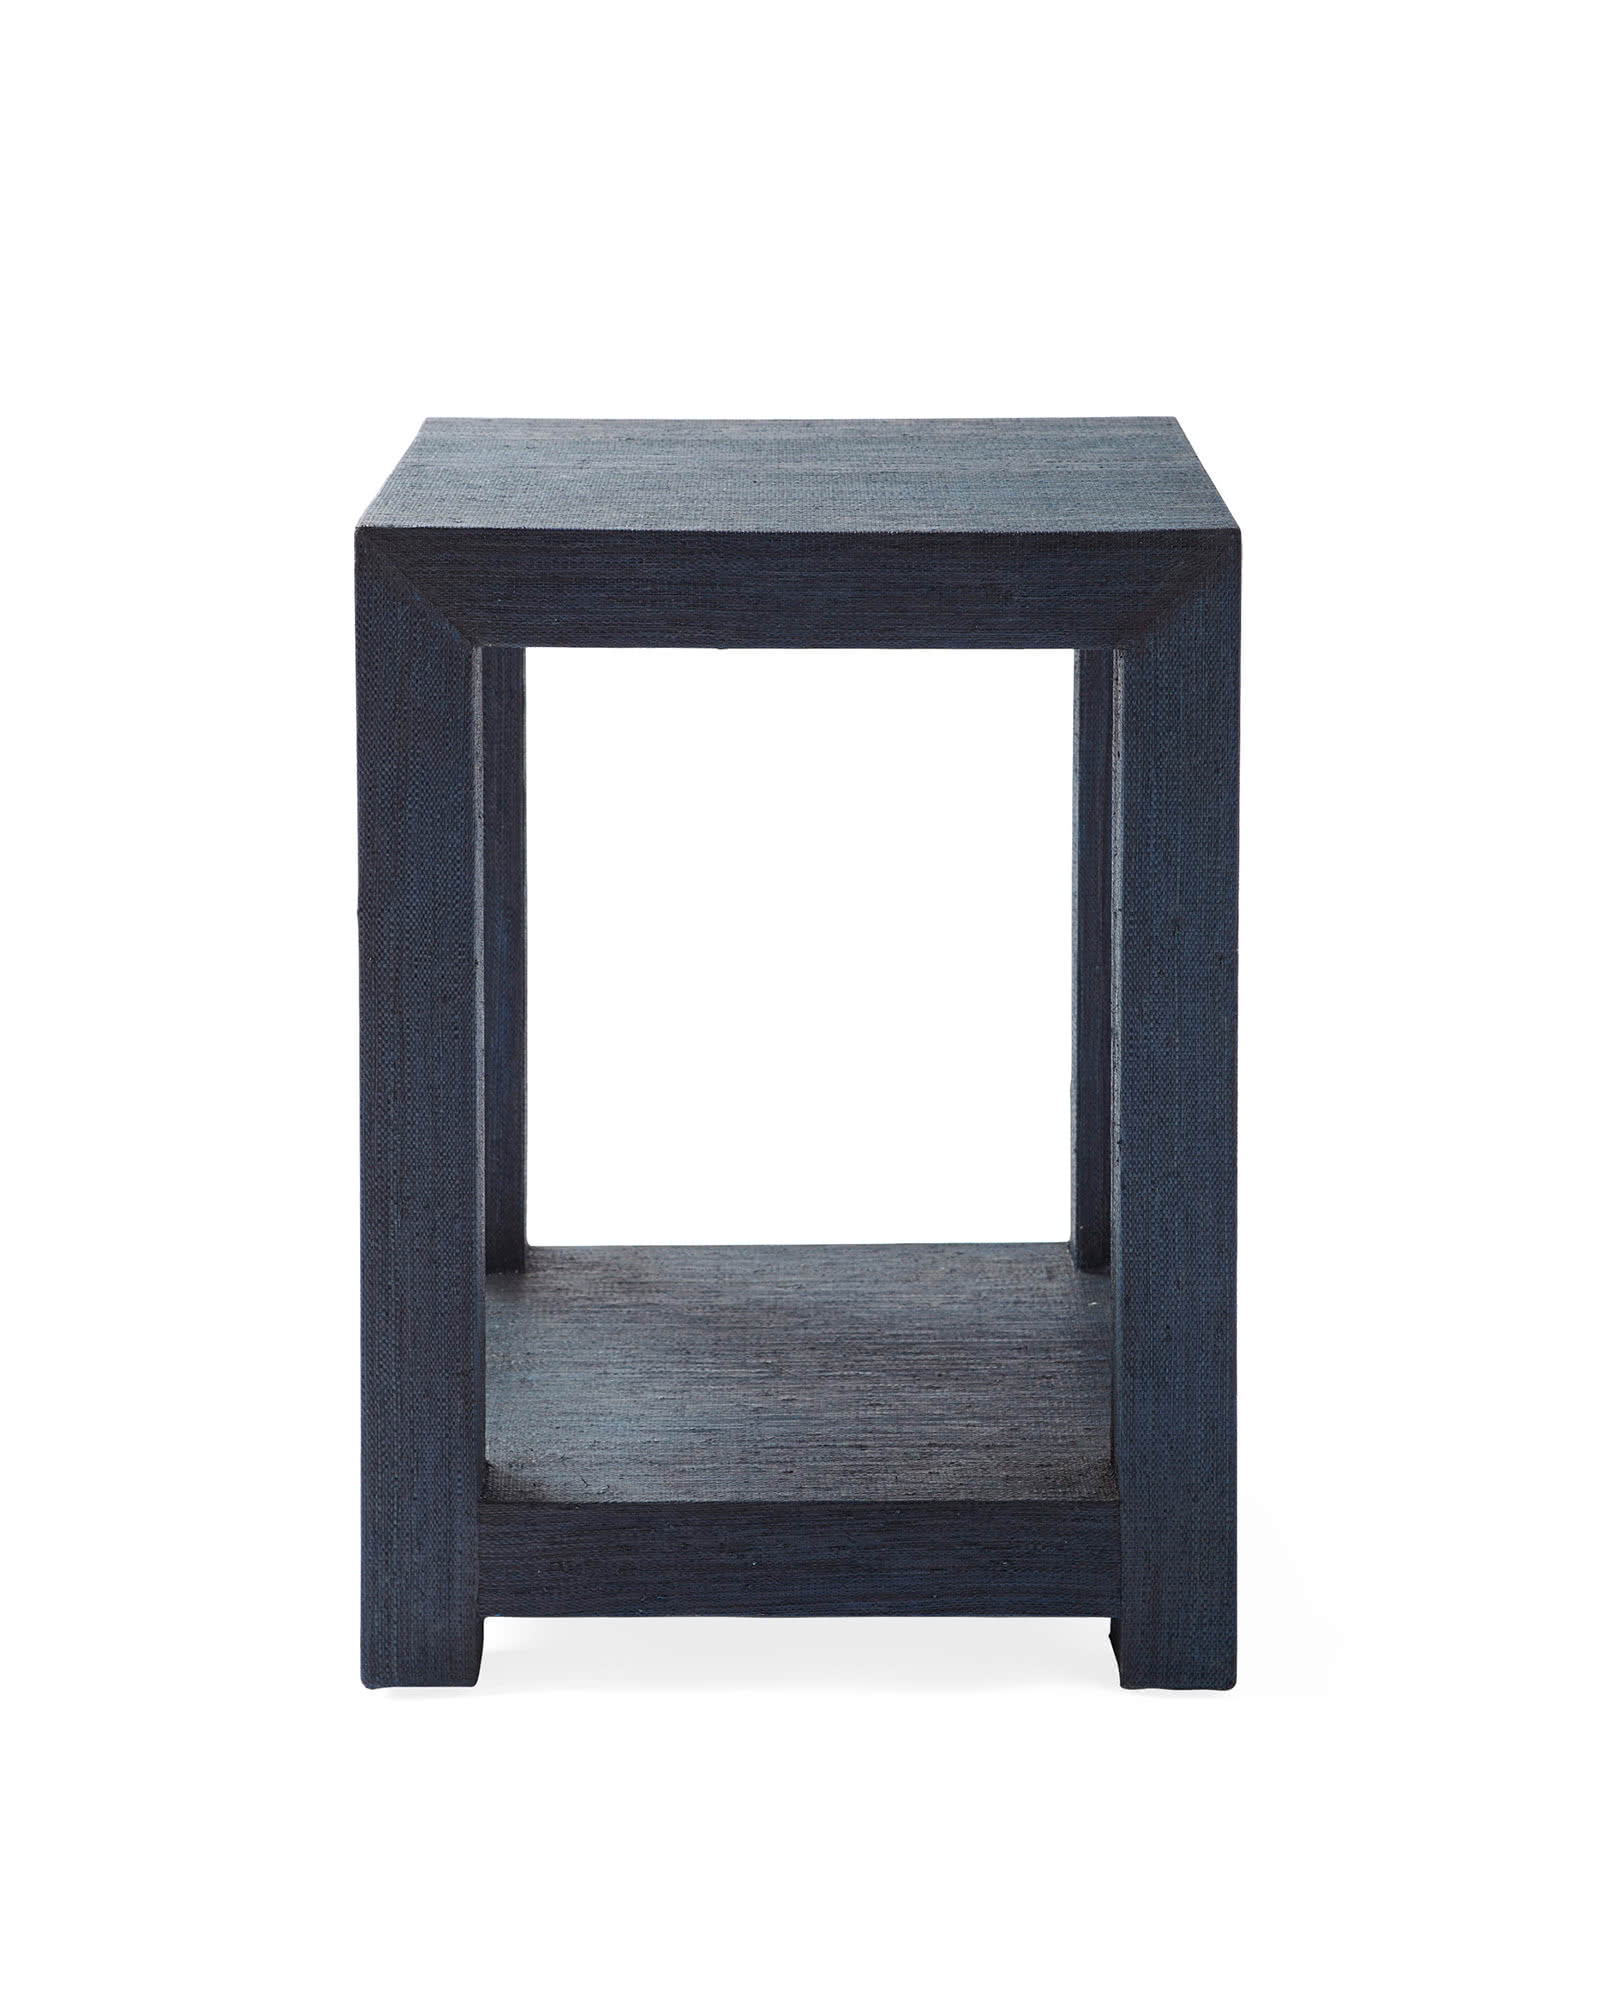 Blake Raffia Side Table, Indigo